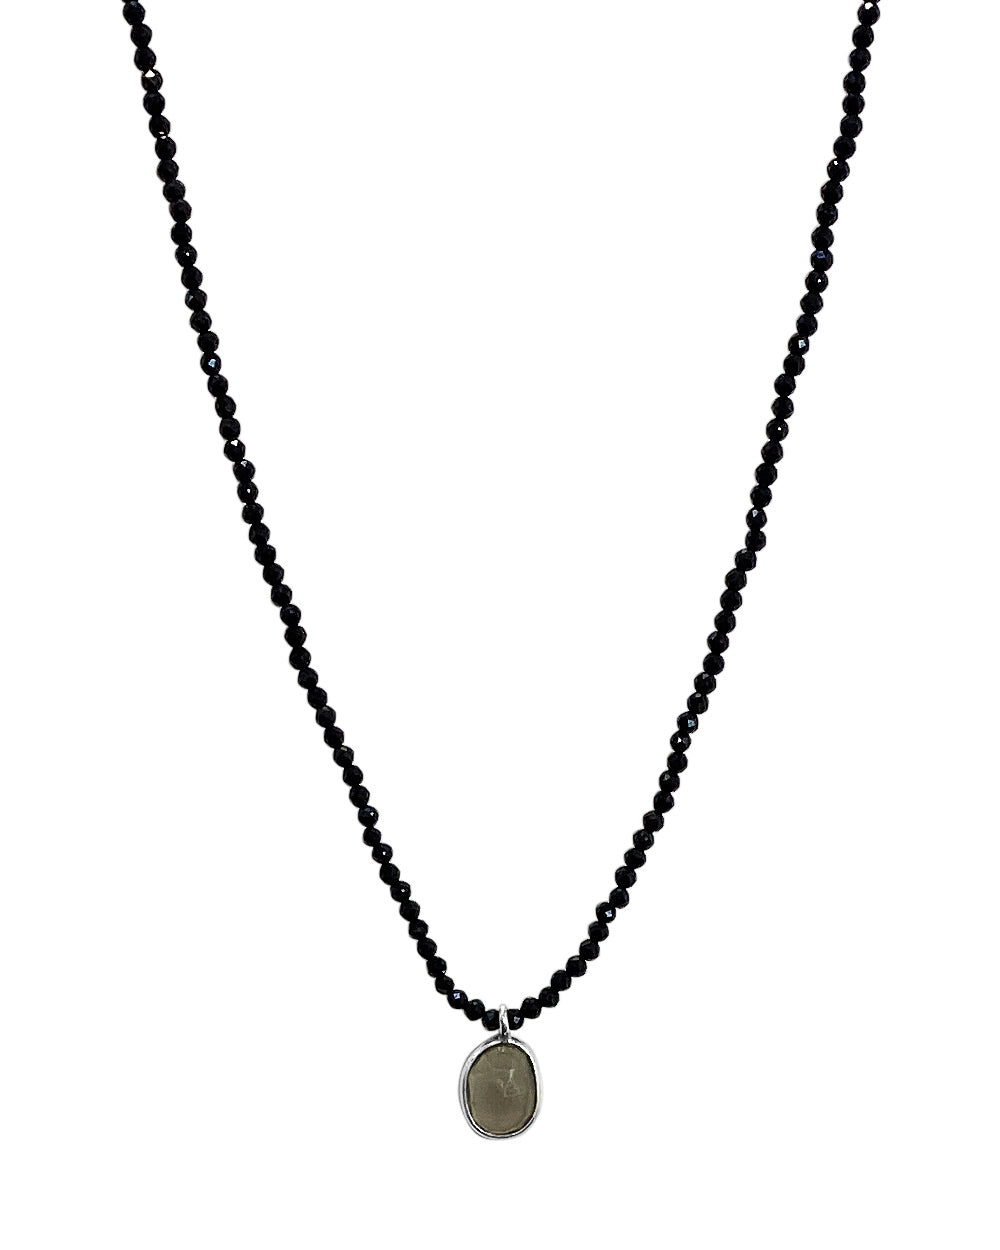 Empowered Black Spinel Necklace - Confidence